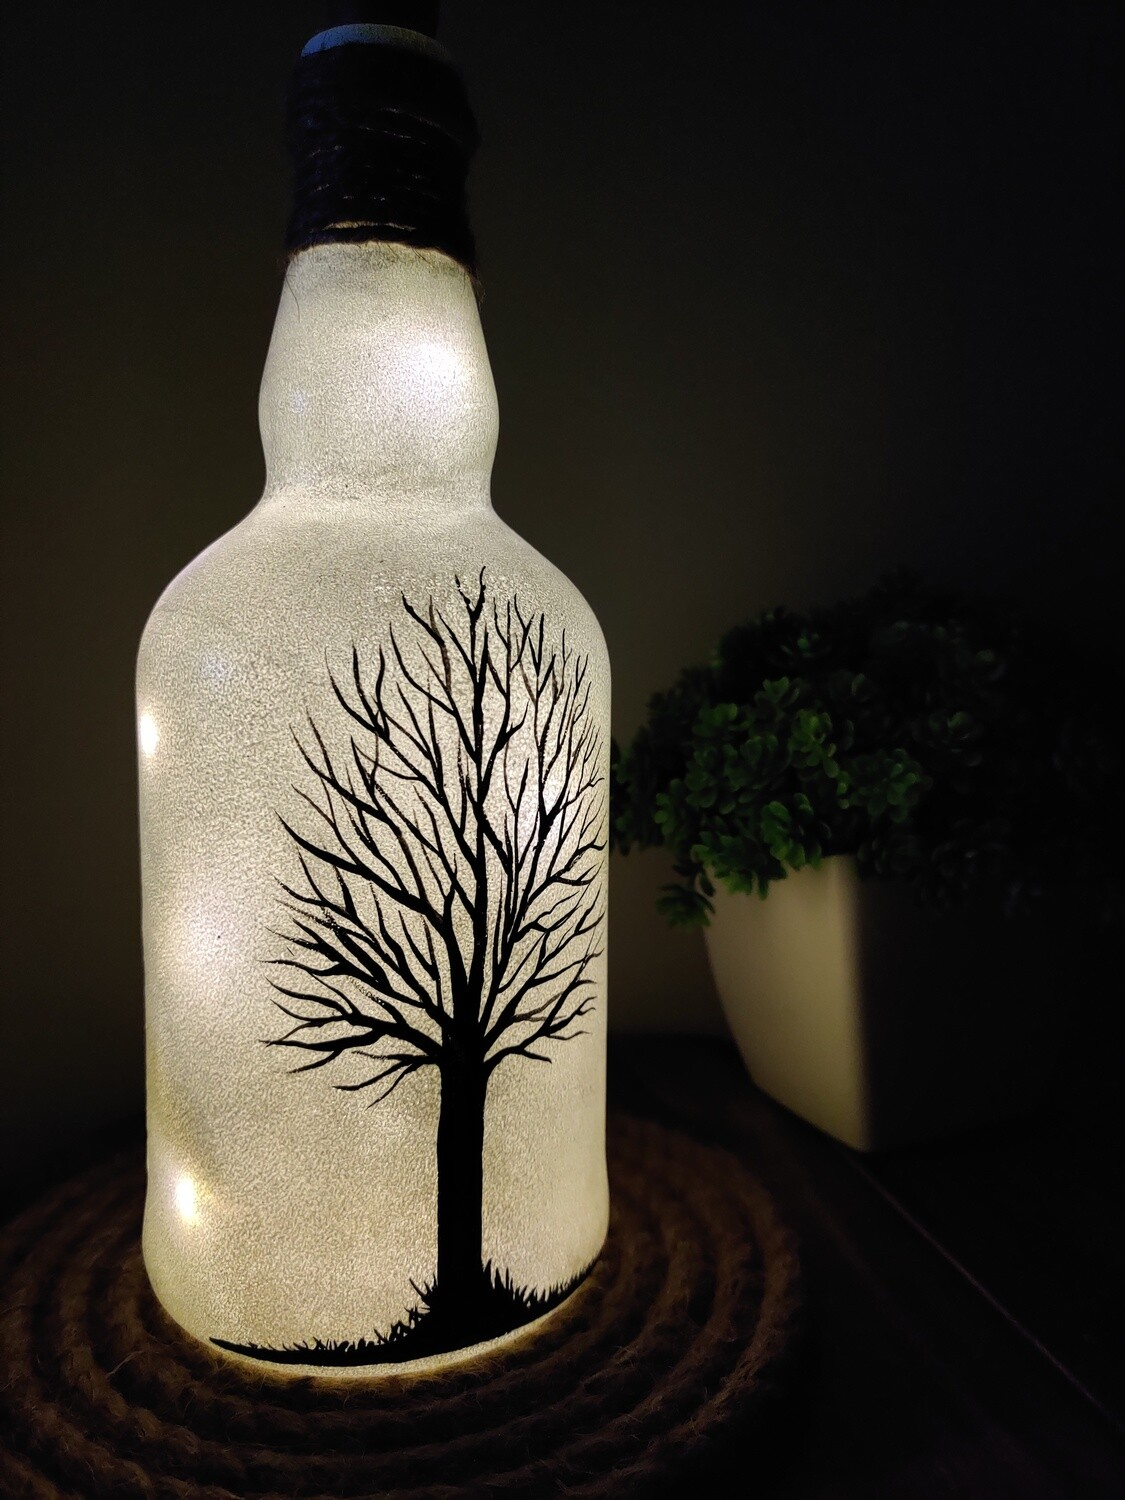 Handcrafted Black Tree Bottle Lamp - Small